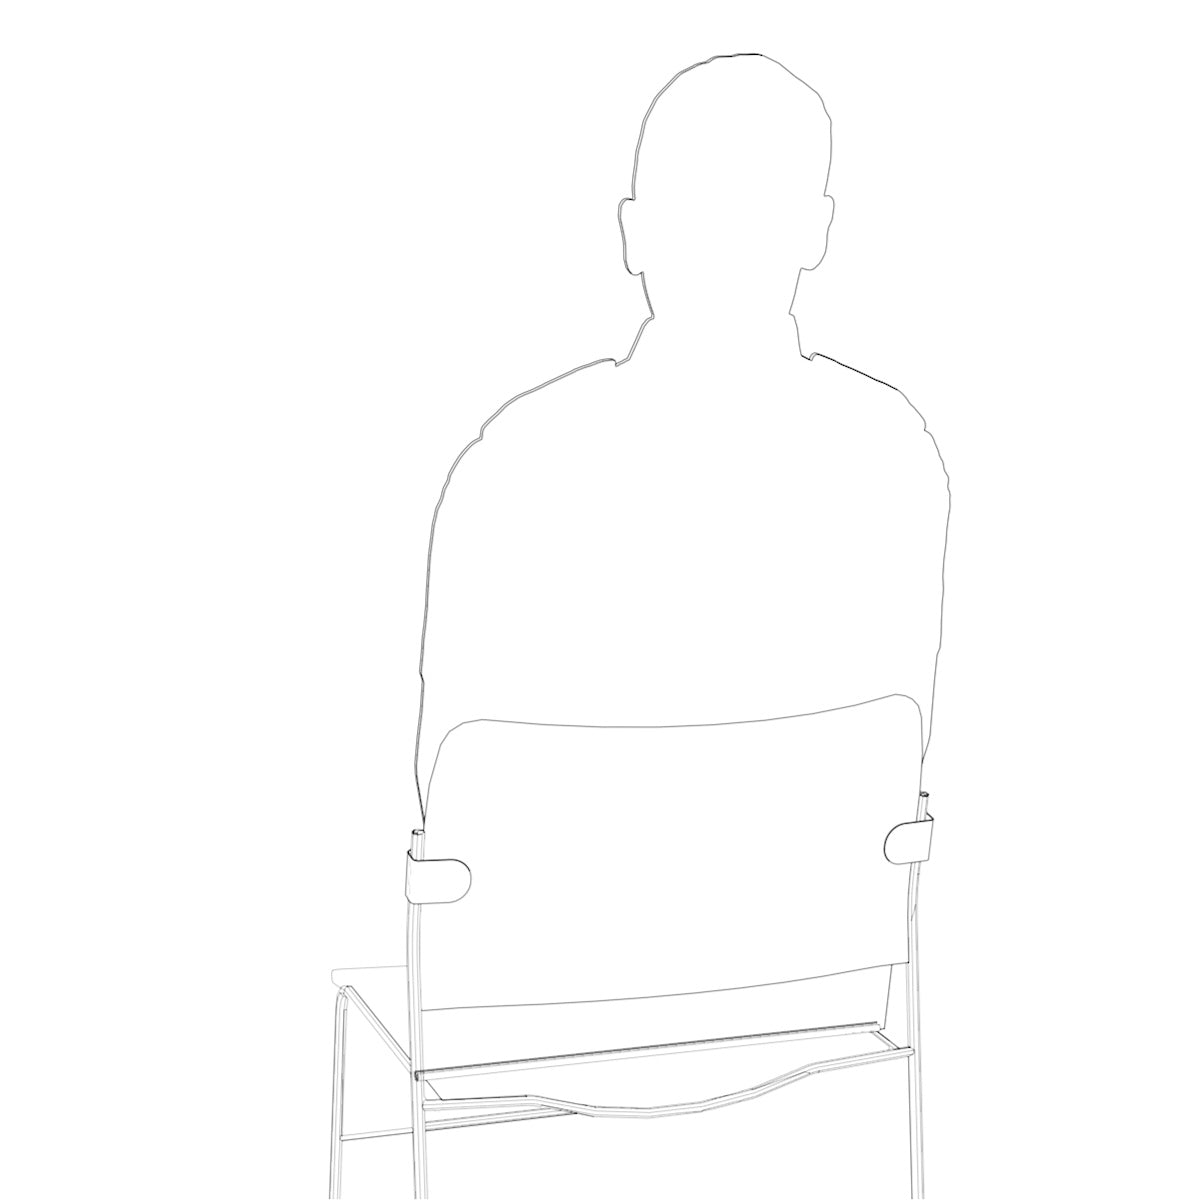 Silhouette on chair with back showing fixings